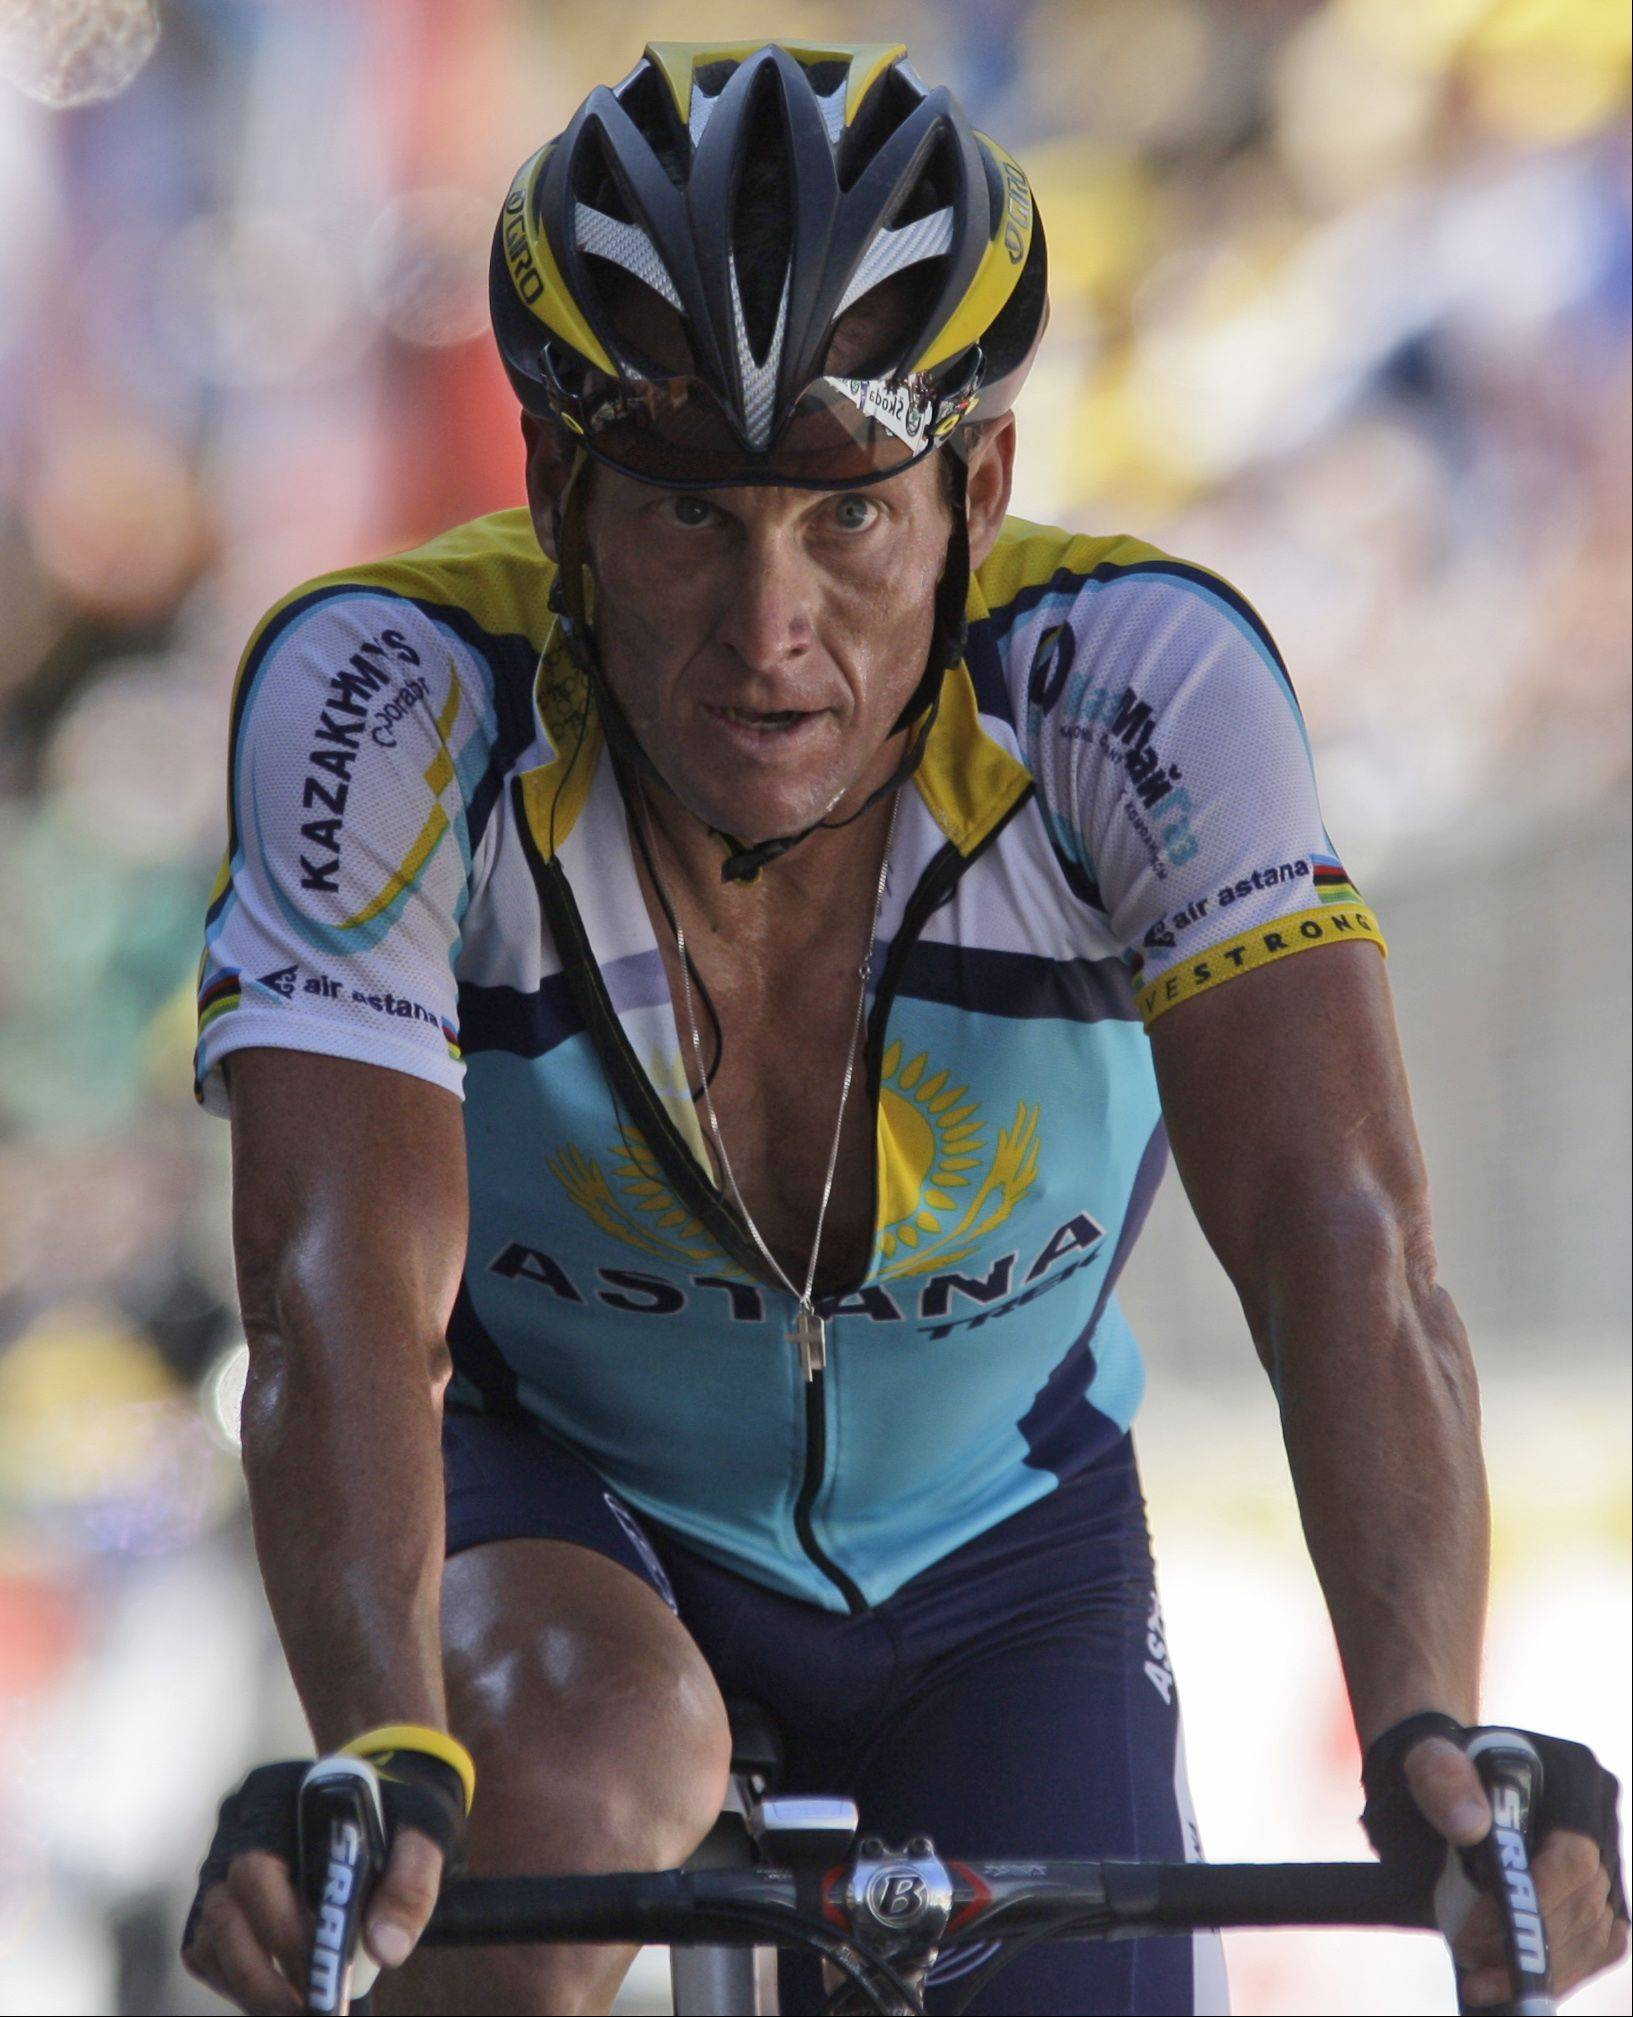 American seven-time Tour de France winner Lance Armstrong crosses the finish line during 15th stage of the Tour de France cycling race over 207.5 kilometers (129 miles) with start in Pontarlier, France and finish in Verbier, Switzerland, Sunday July 19, 2009.